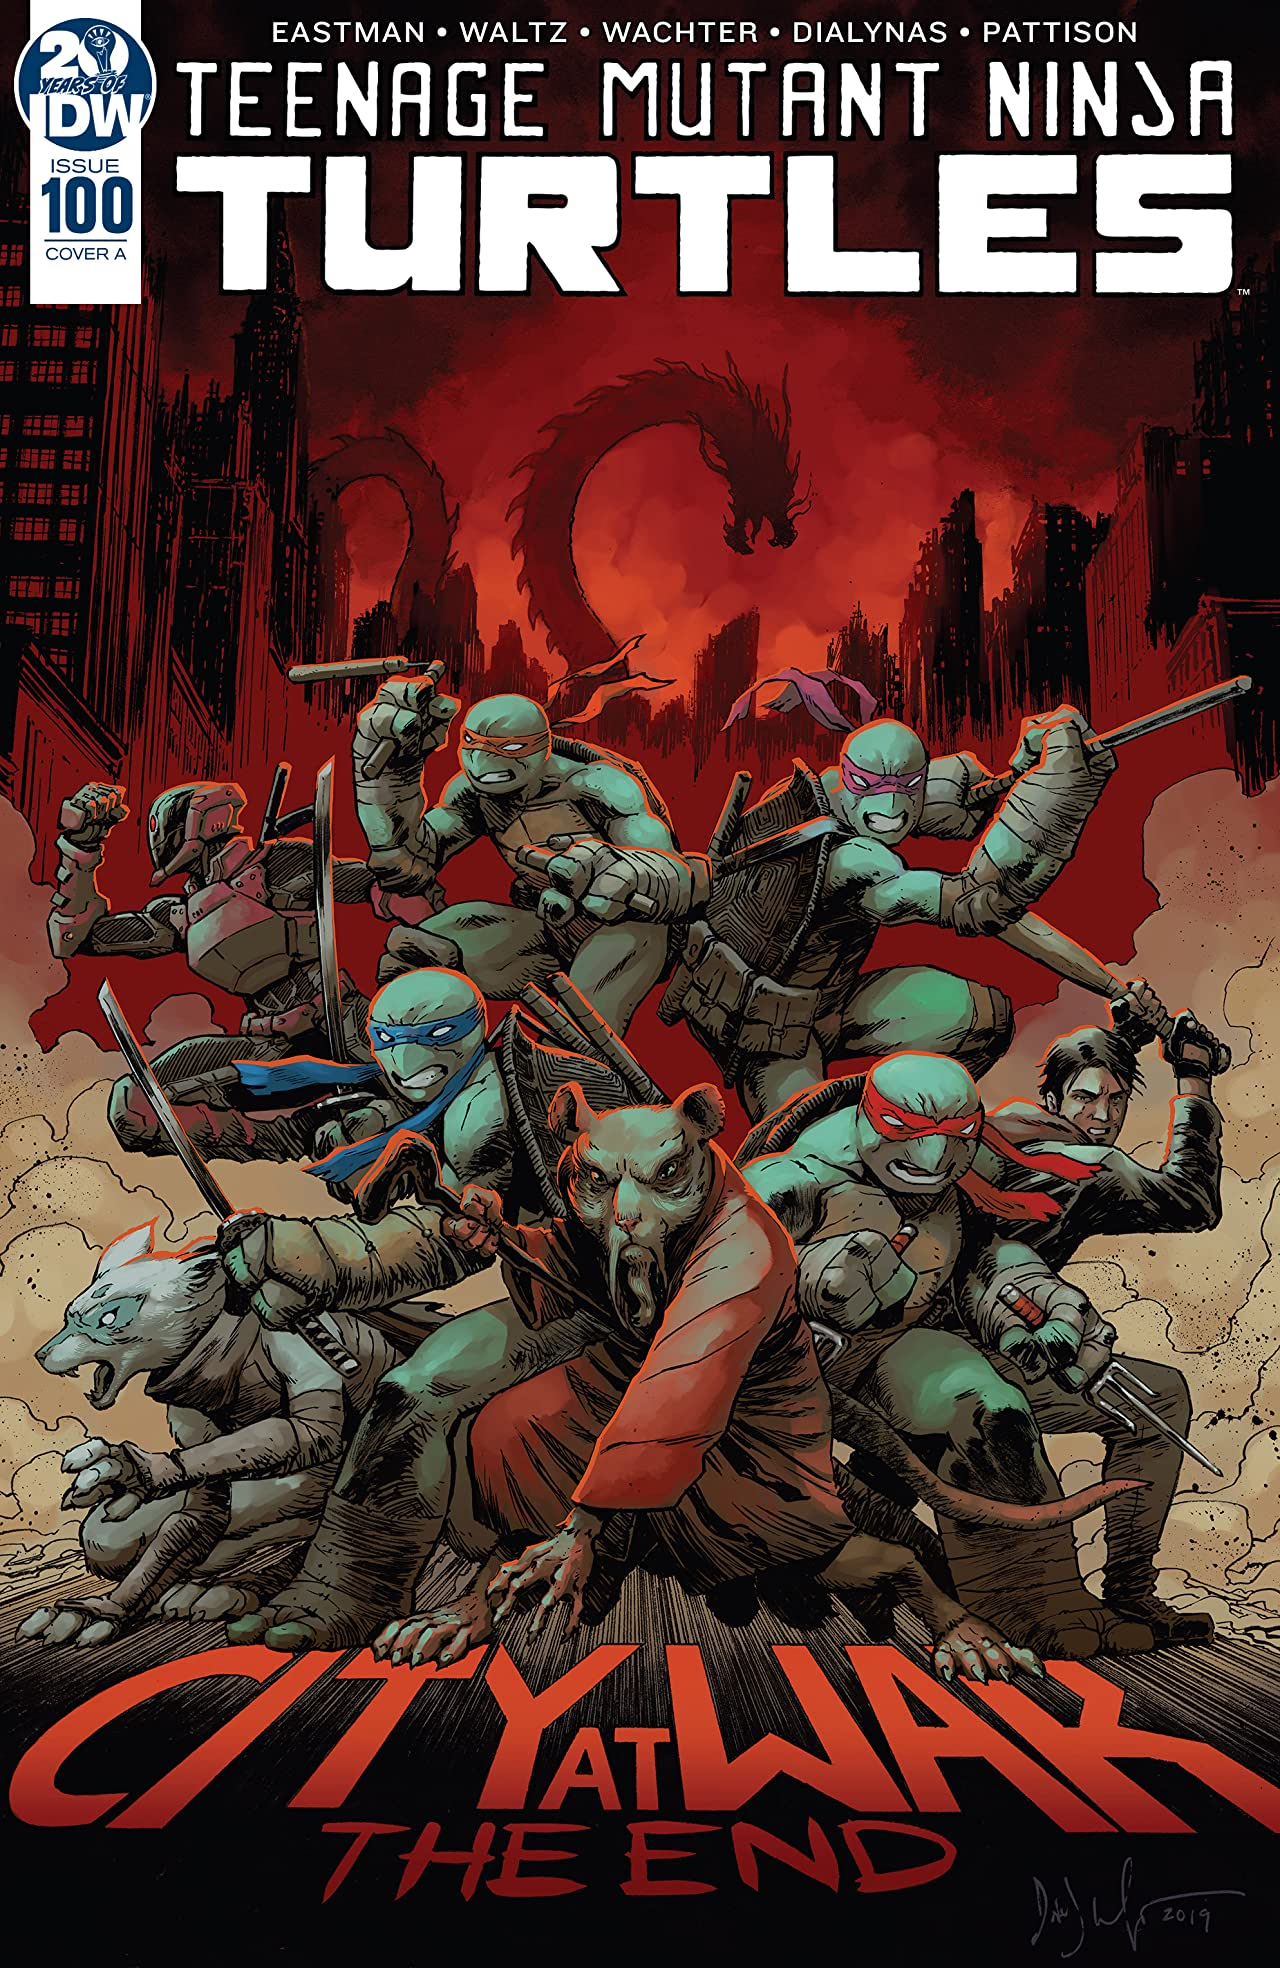 Teenage Mutant Ninja Turtles No.100